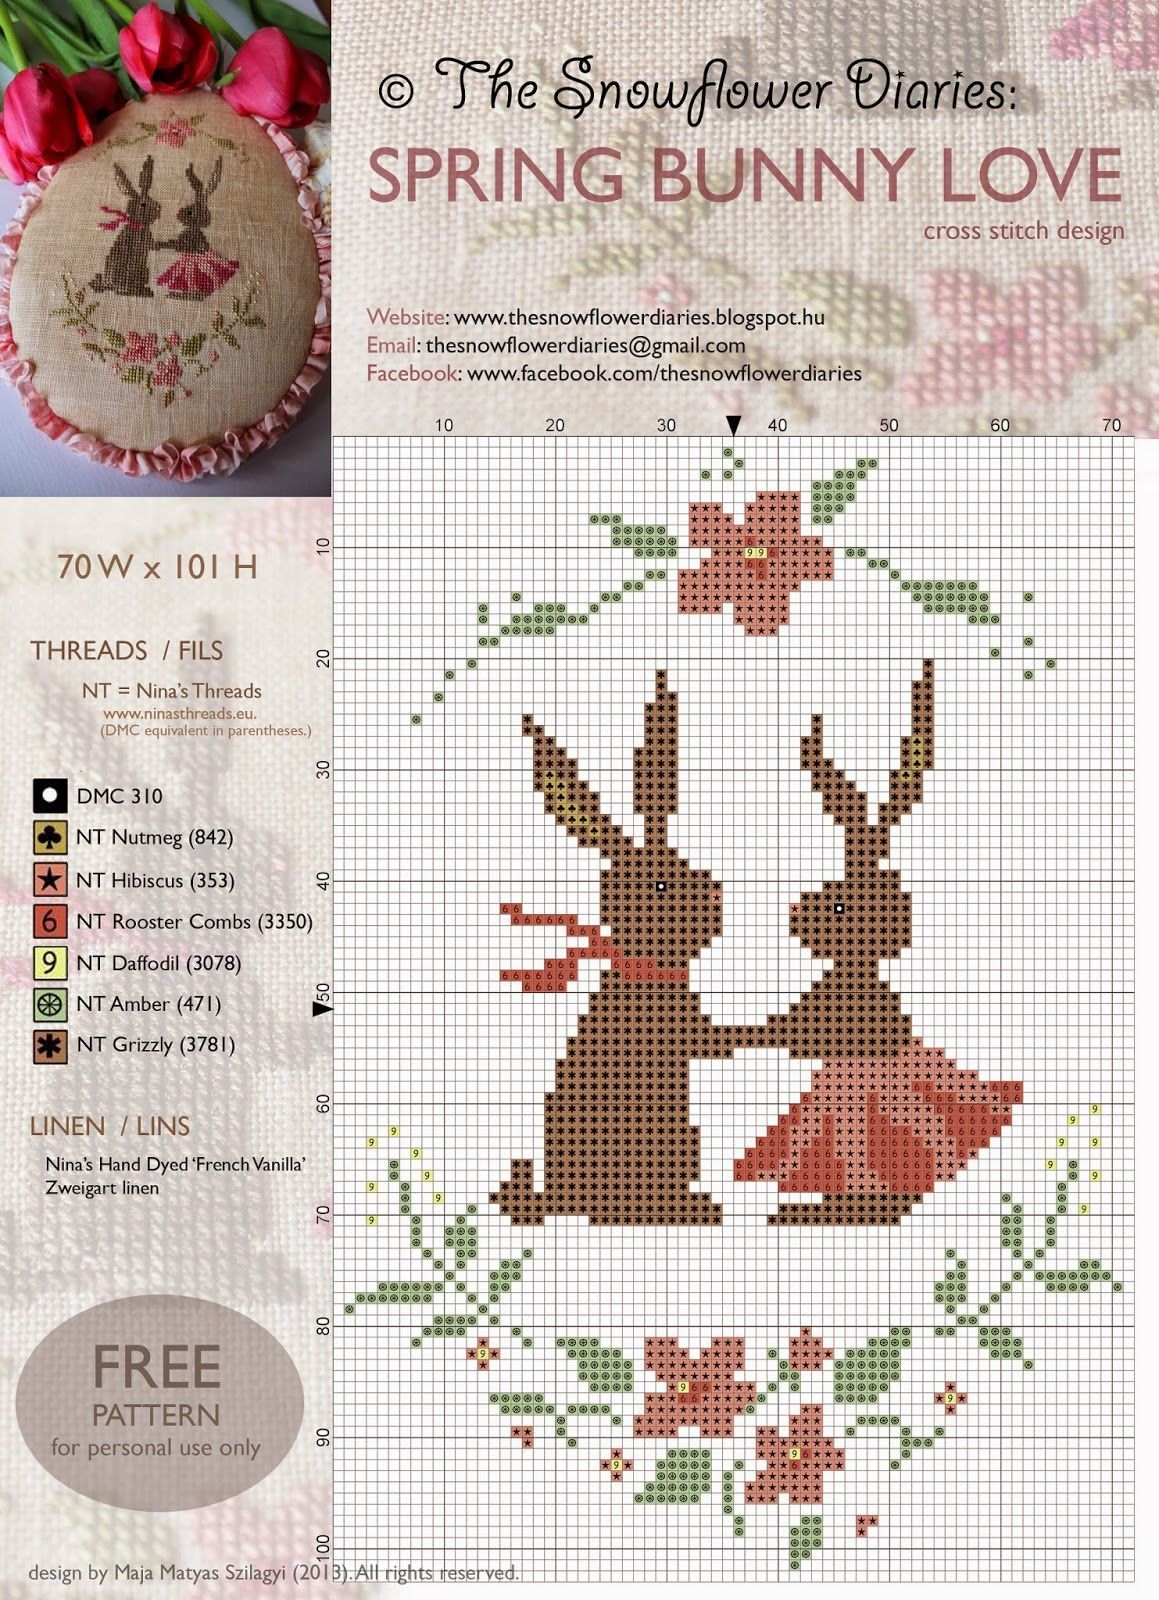 Photo of The Snowflower Diaries: Free pattern update and planning 2015, thanks so for pin…